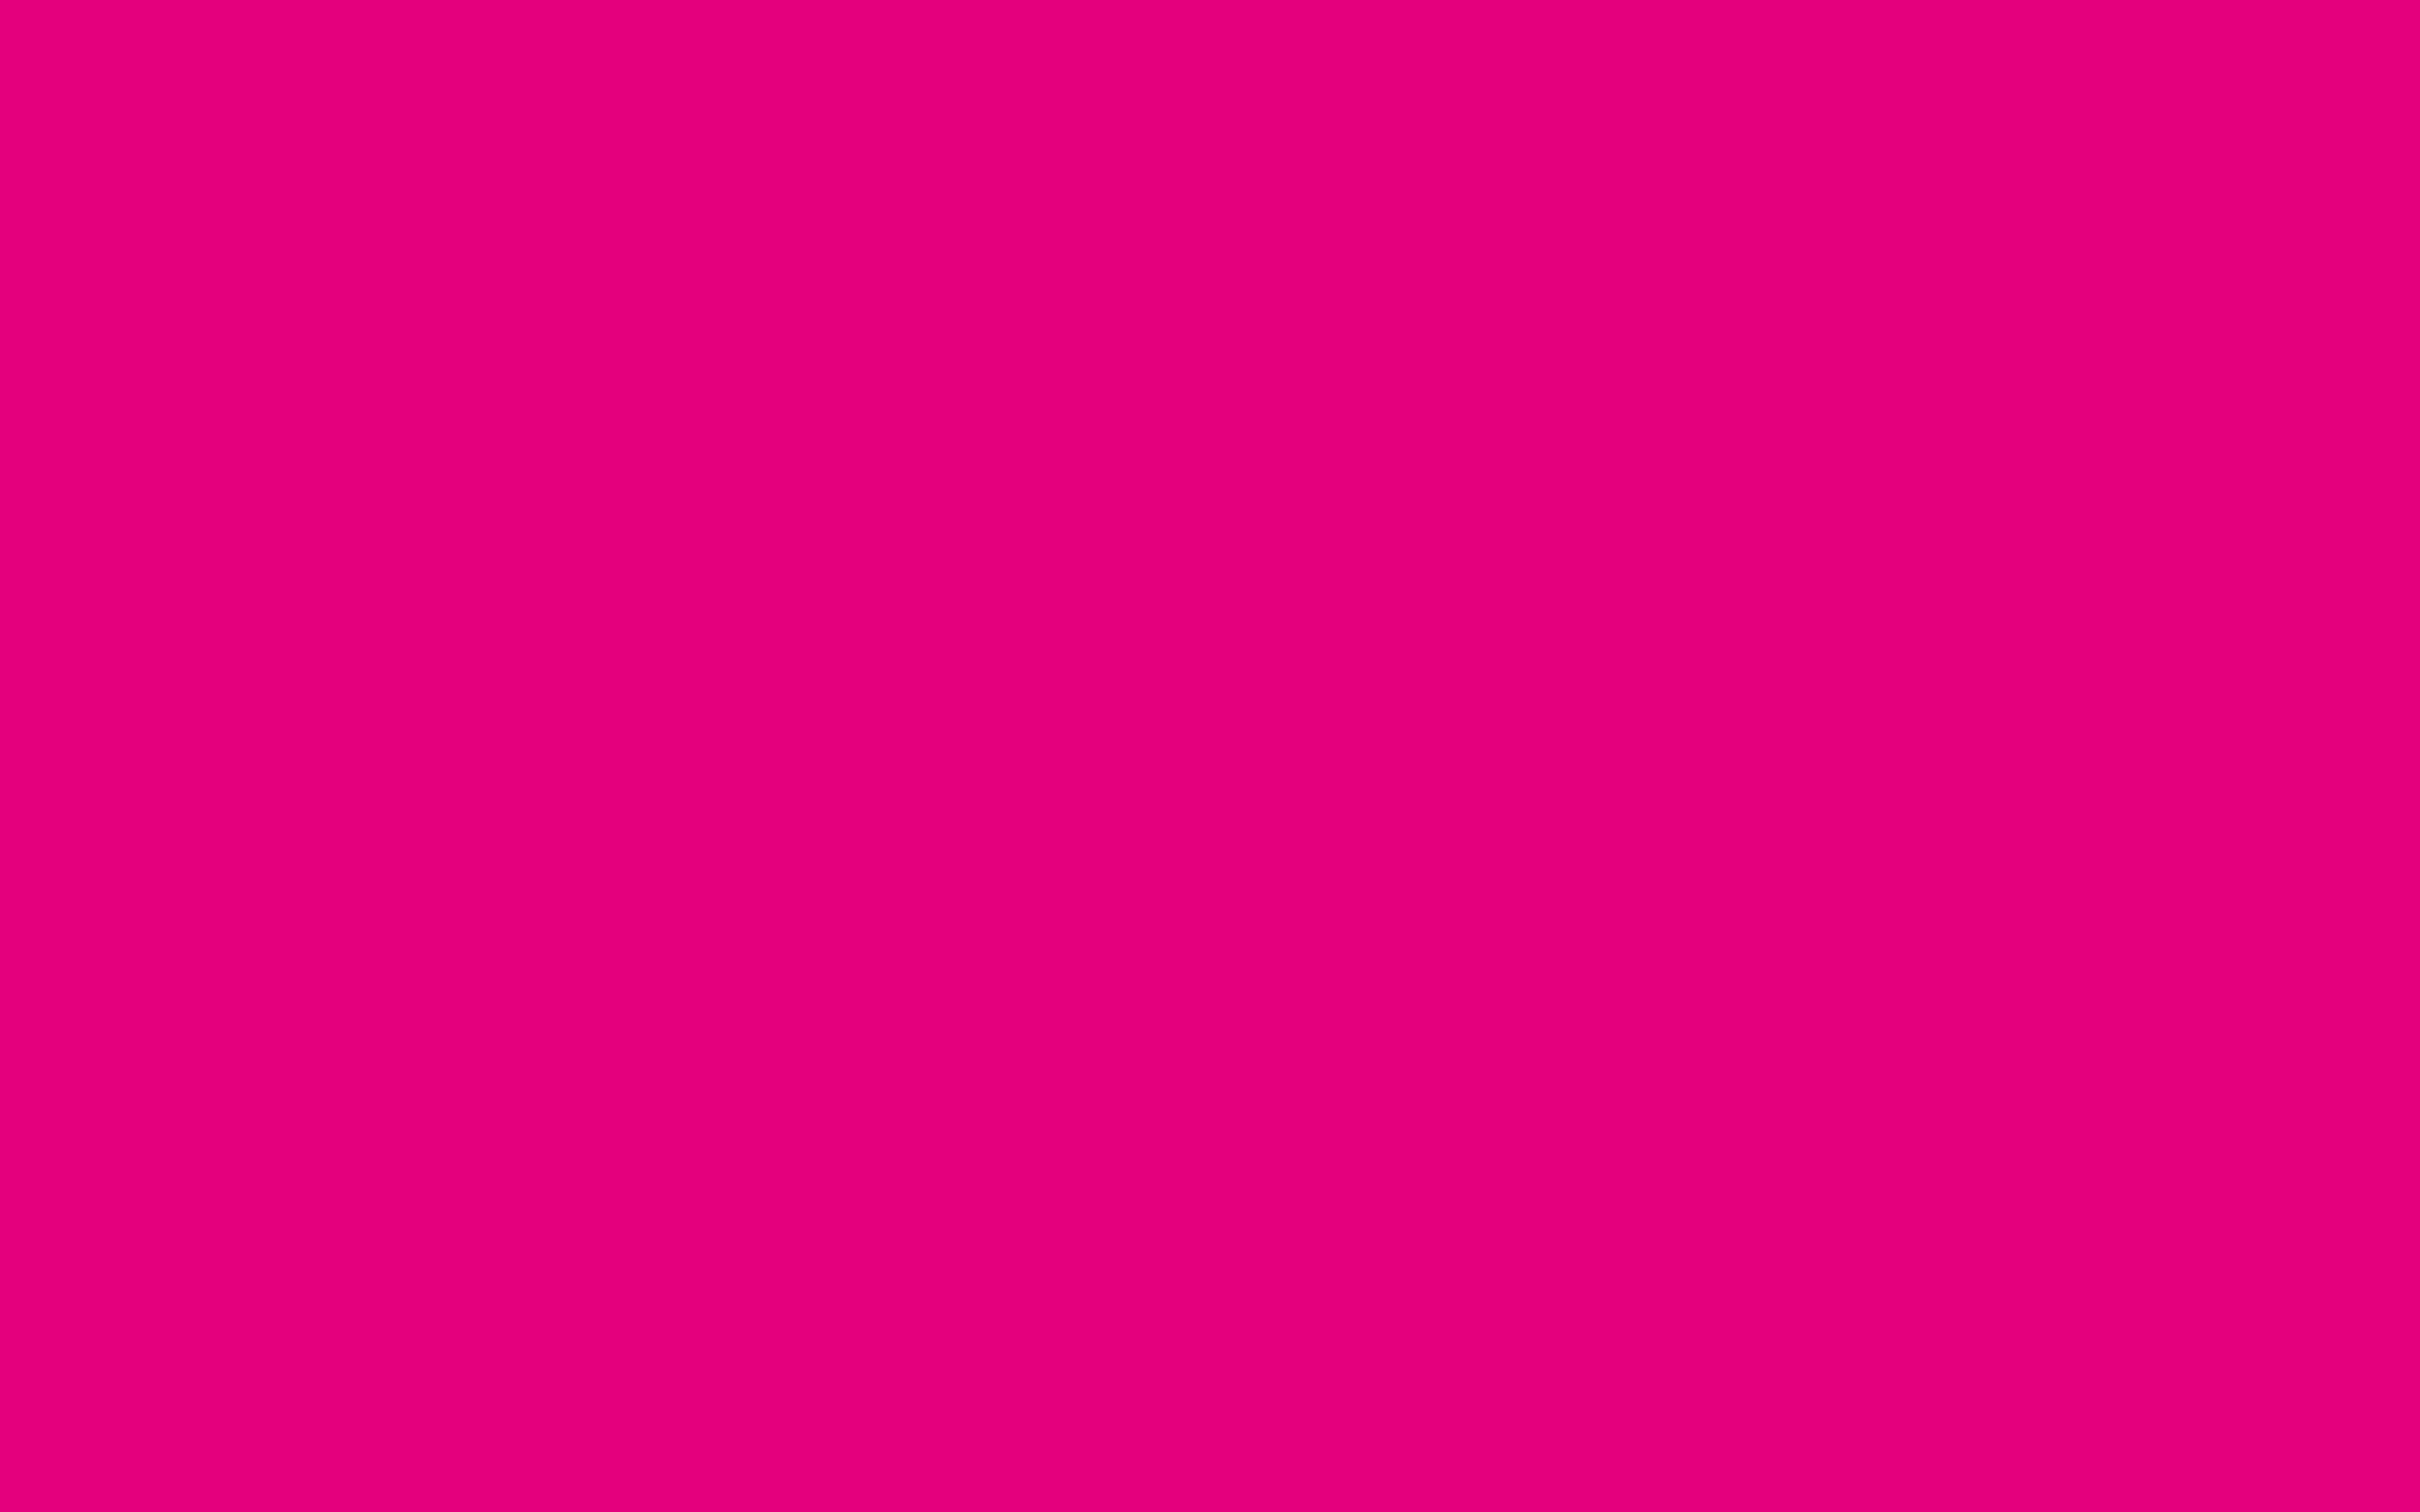 2560x1600 Mexican Pink Solid Color Background